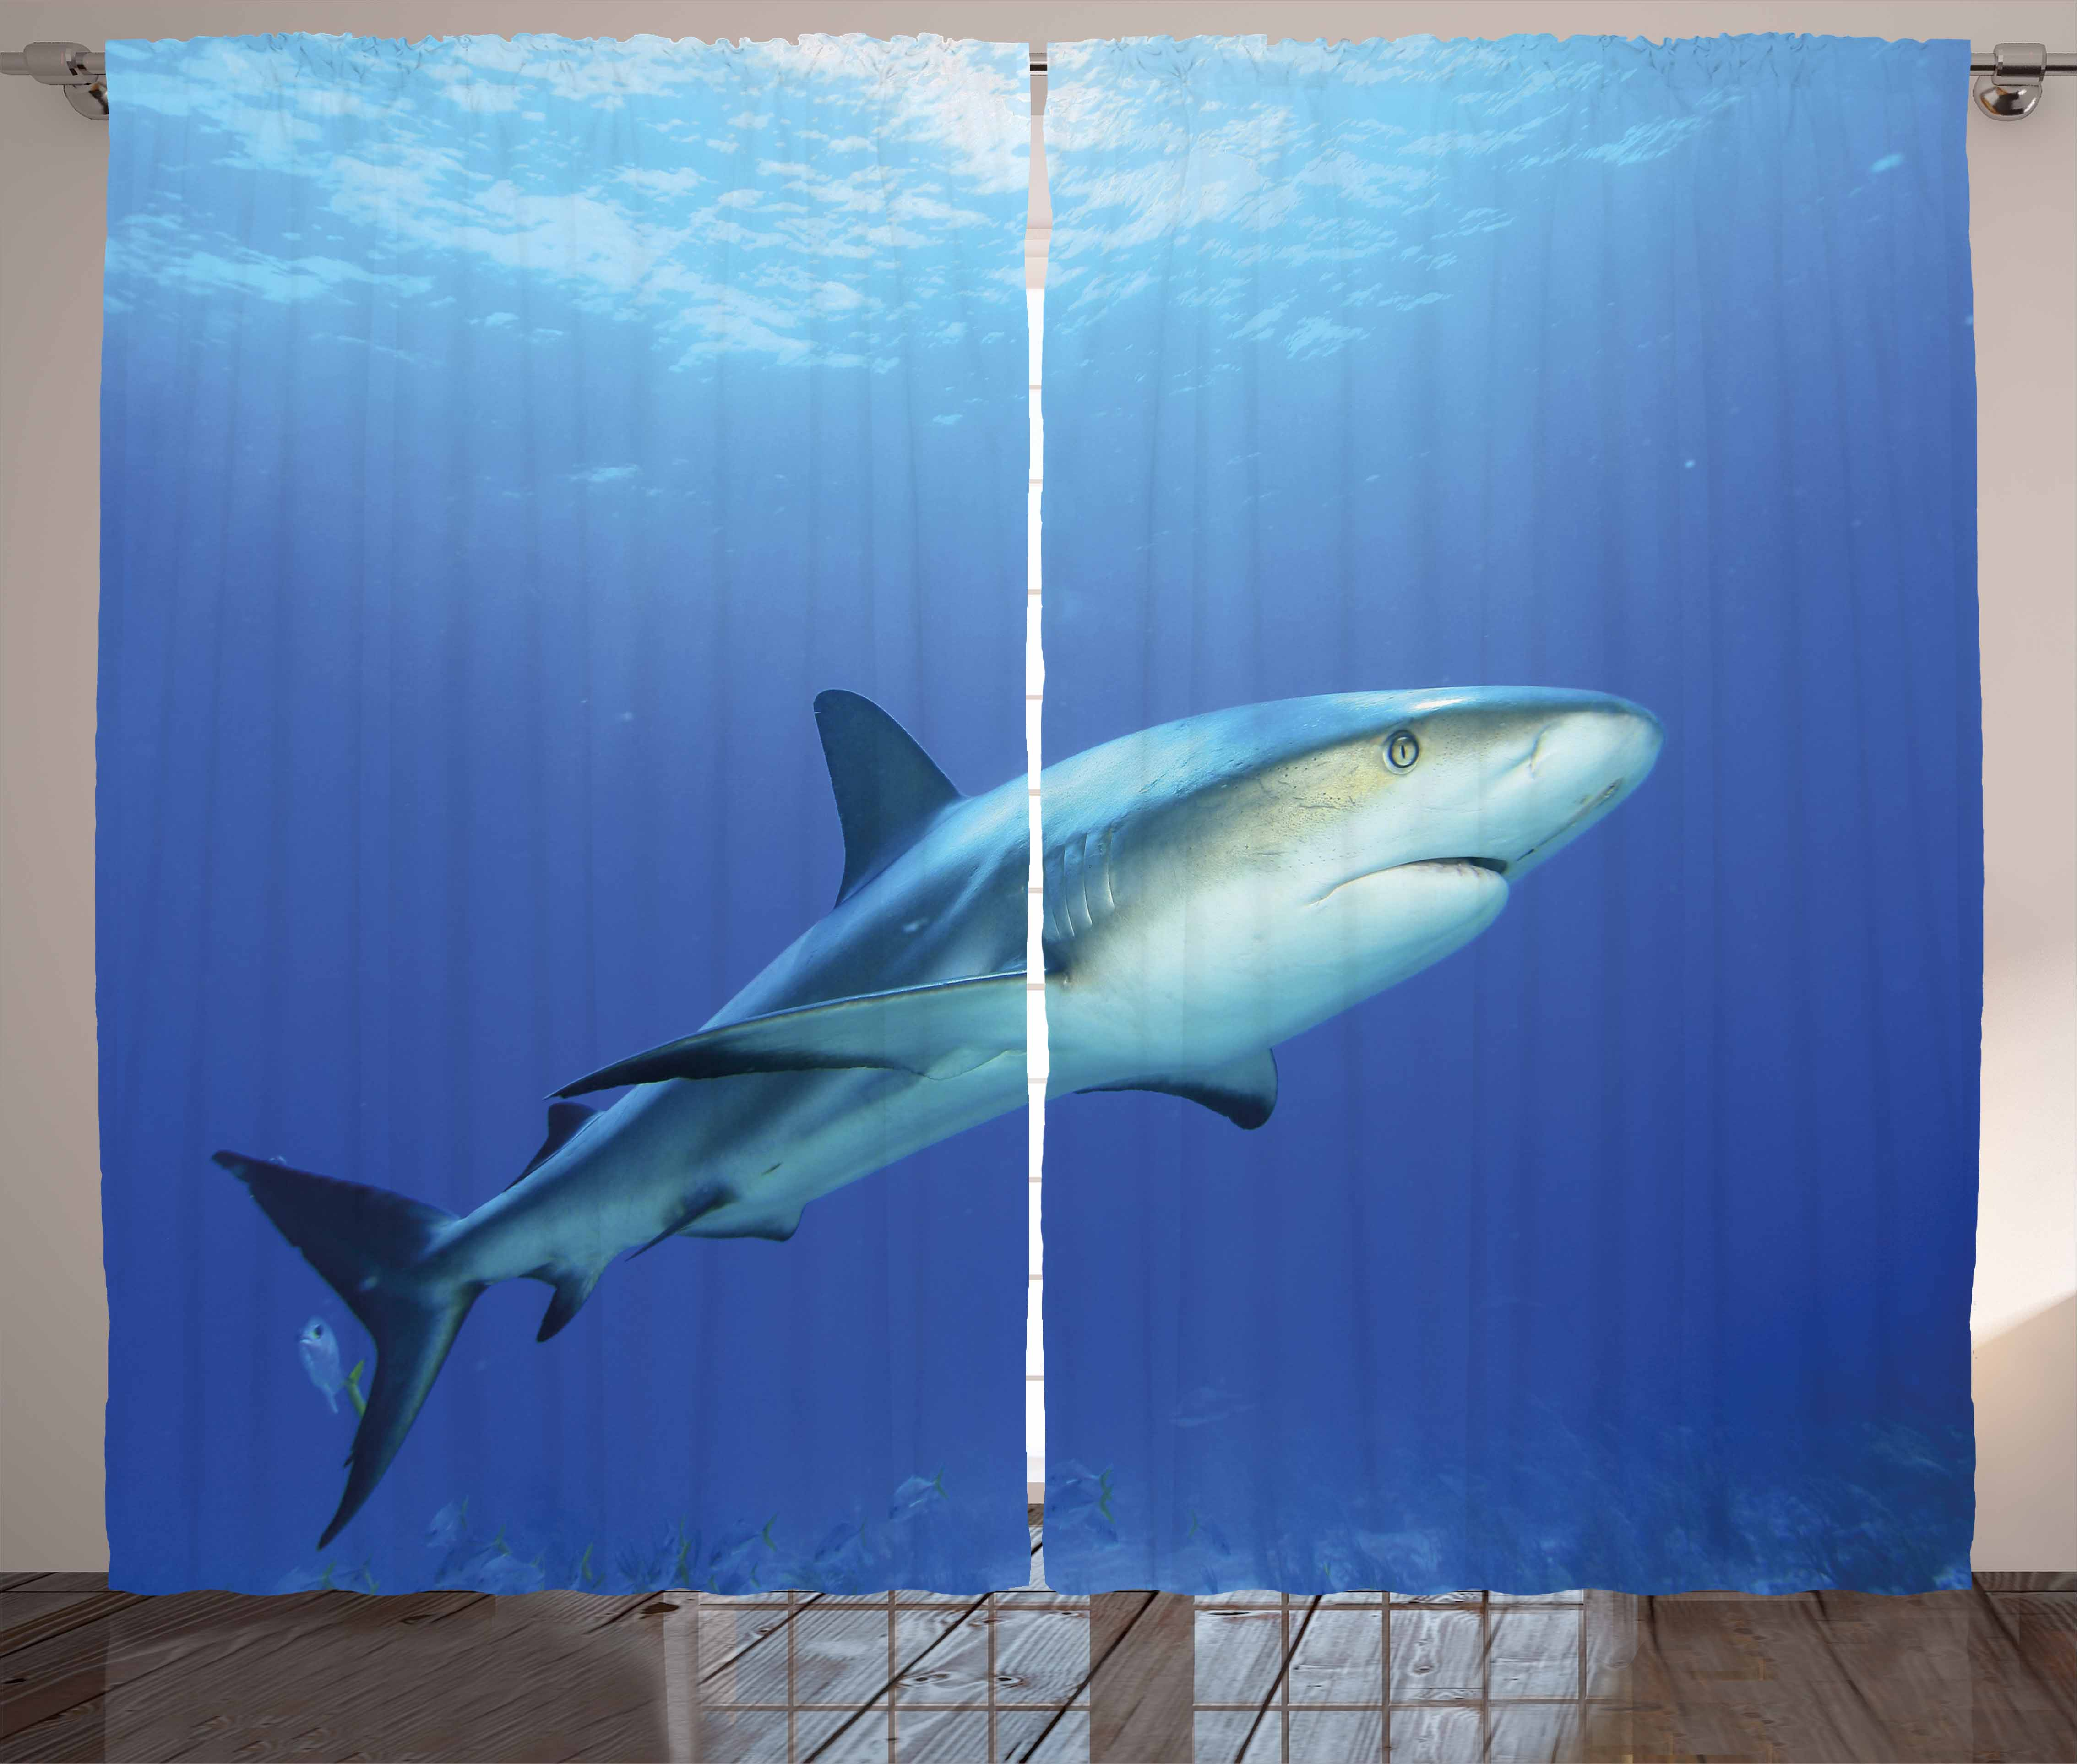 Amazing Shark Curtains 2 Panels Set, Fish In The Exotic Ocean Dreamy Water With  Surreal Color Underwater World Image, Window Drapes For Living Room  Bedroom, ...